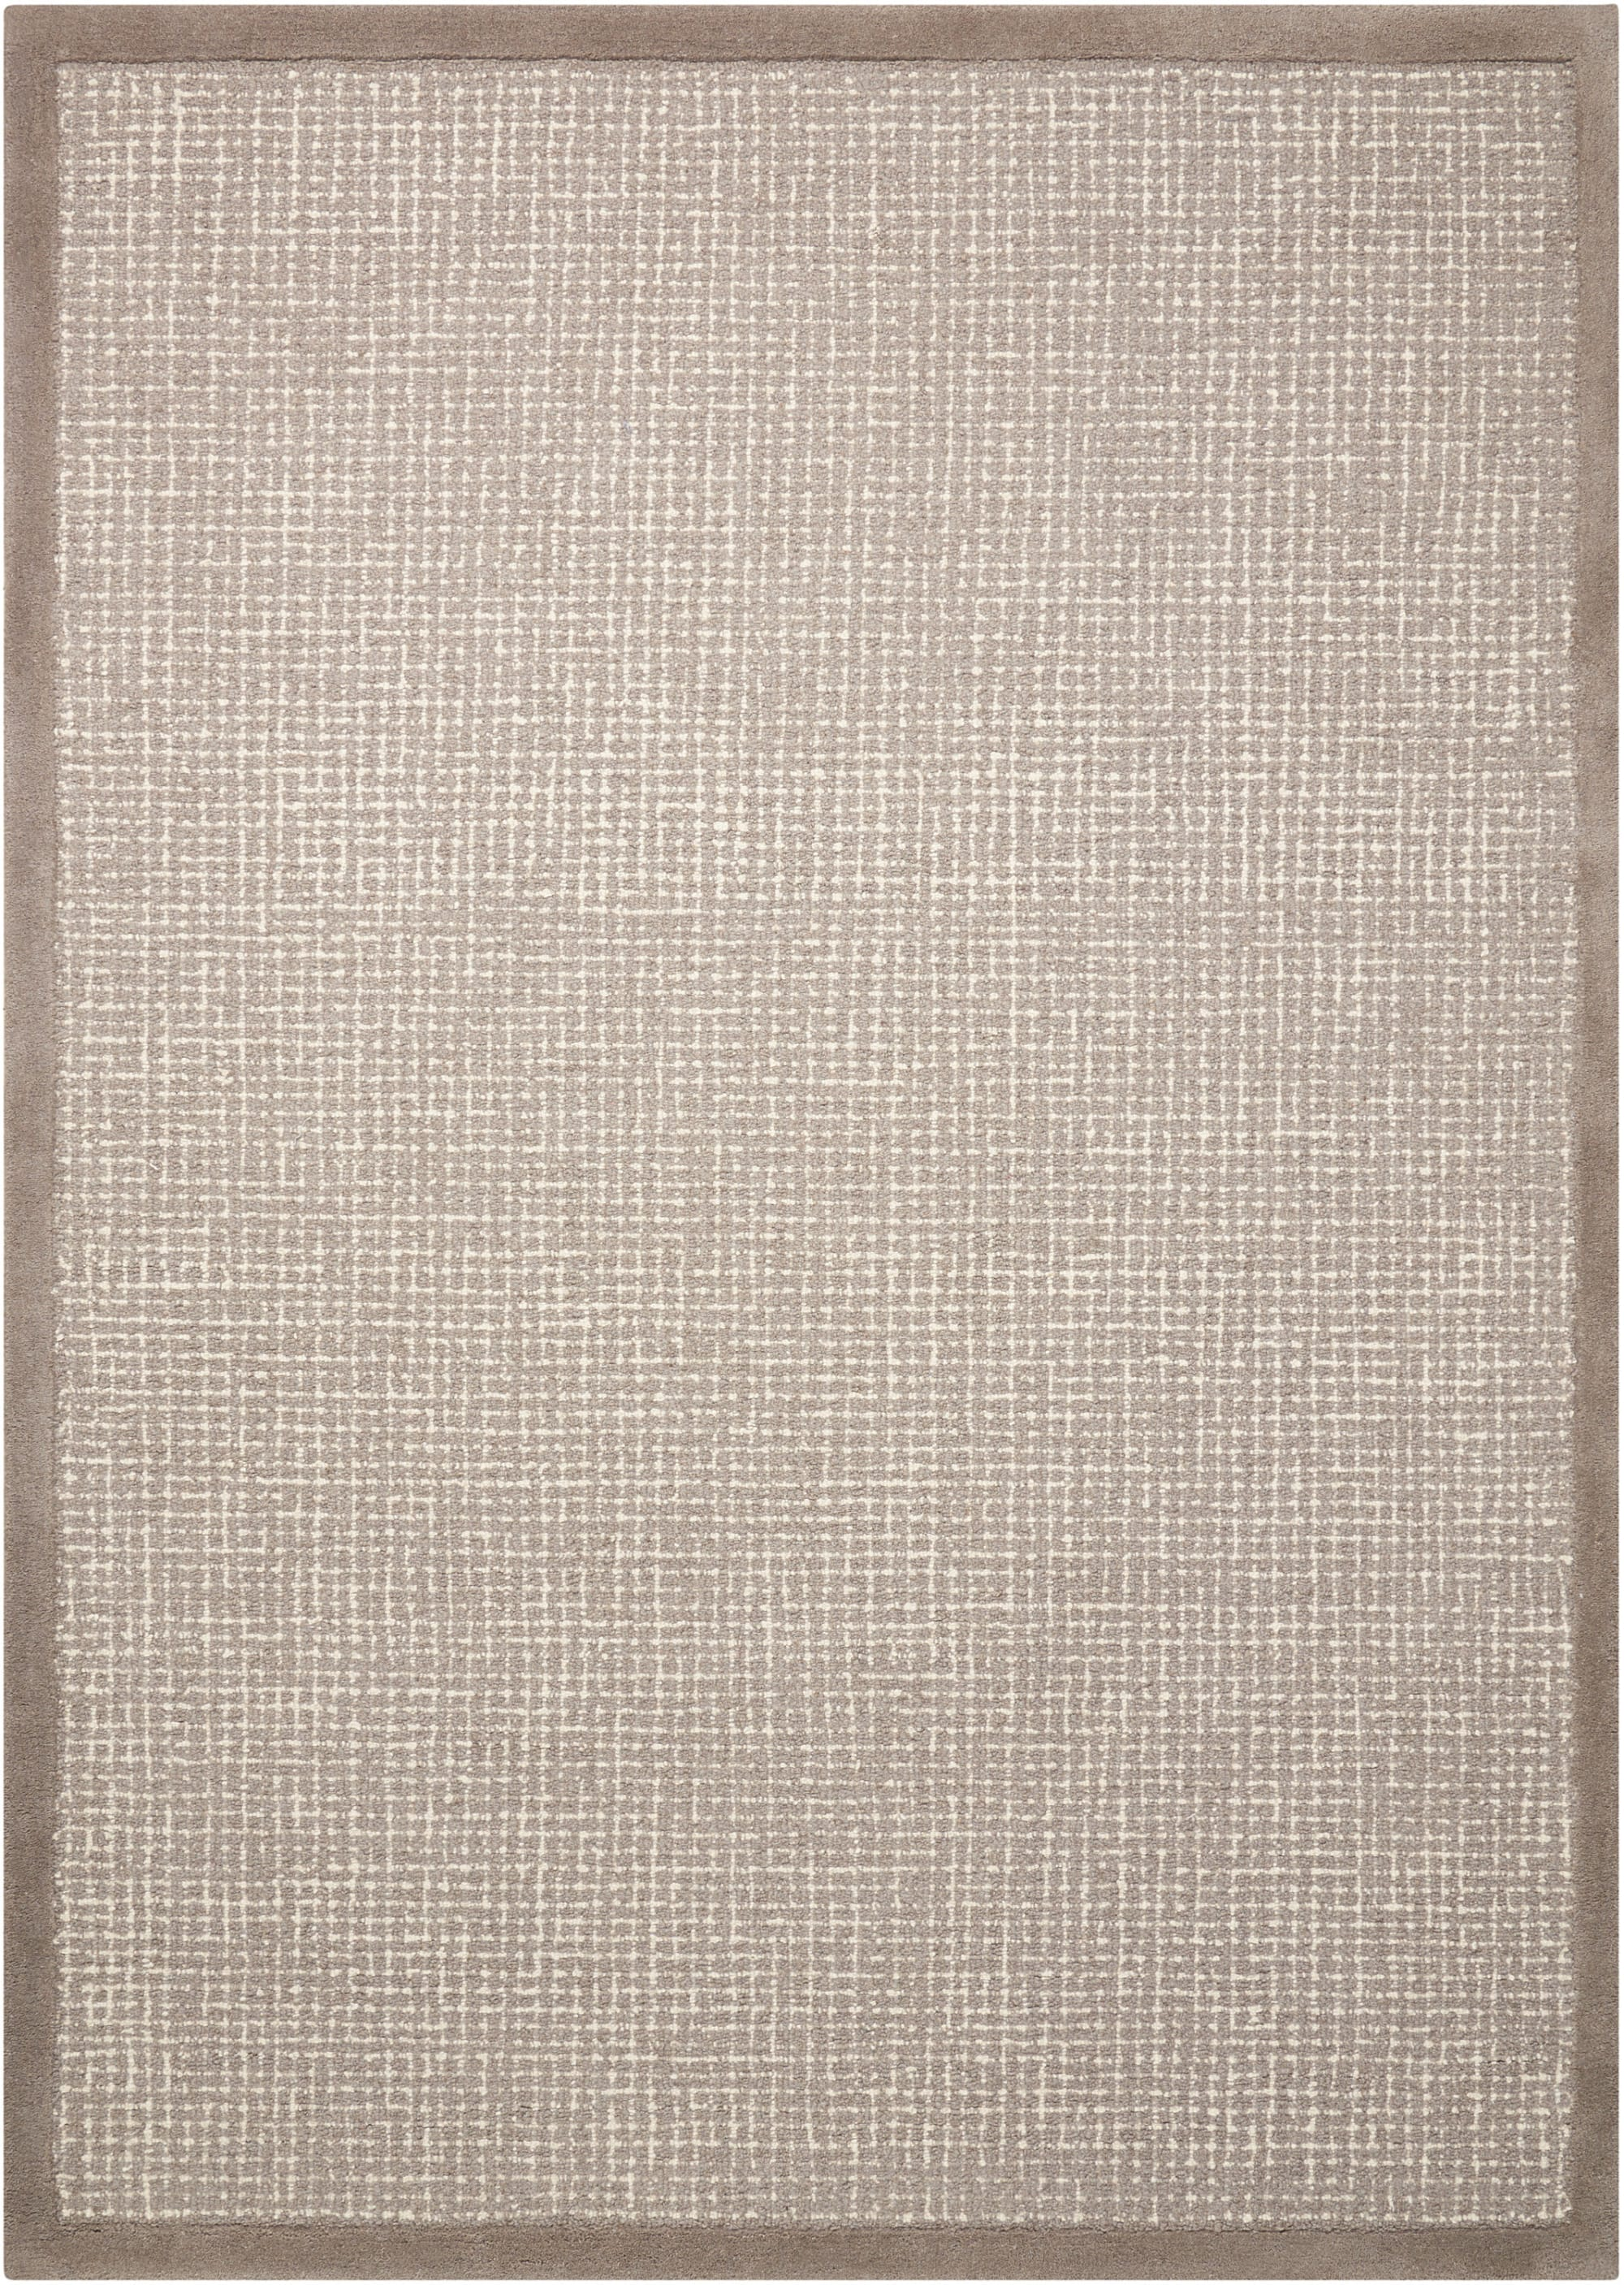 River Brook Rug KI809 Grey/Ivory